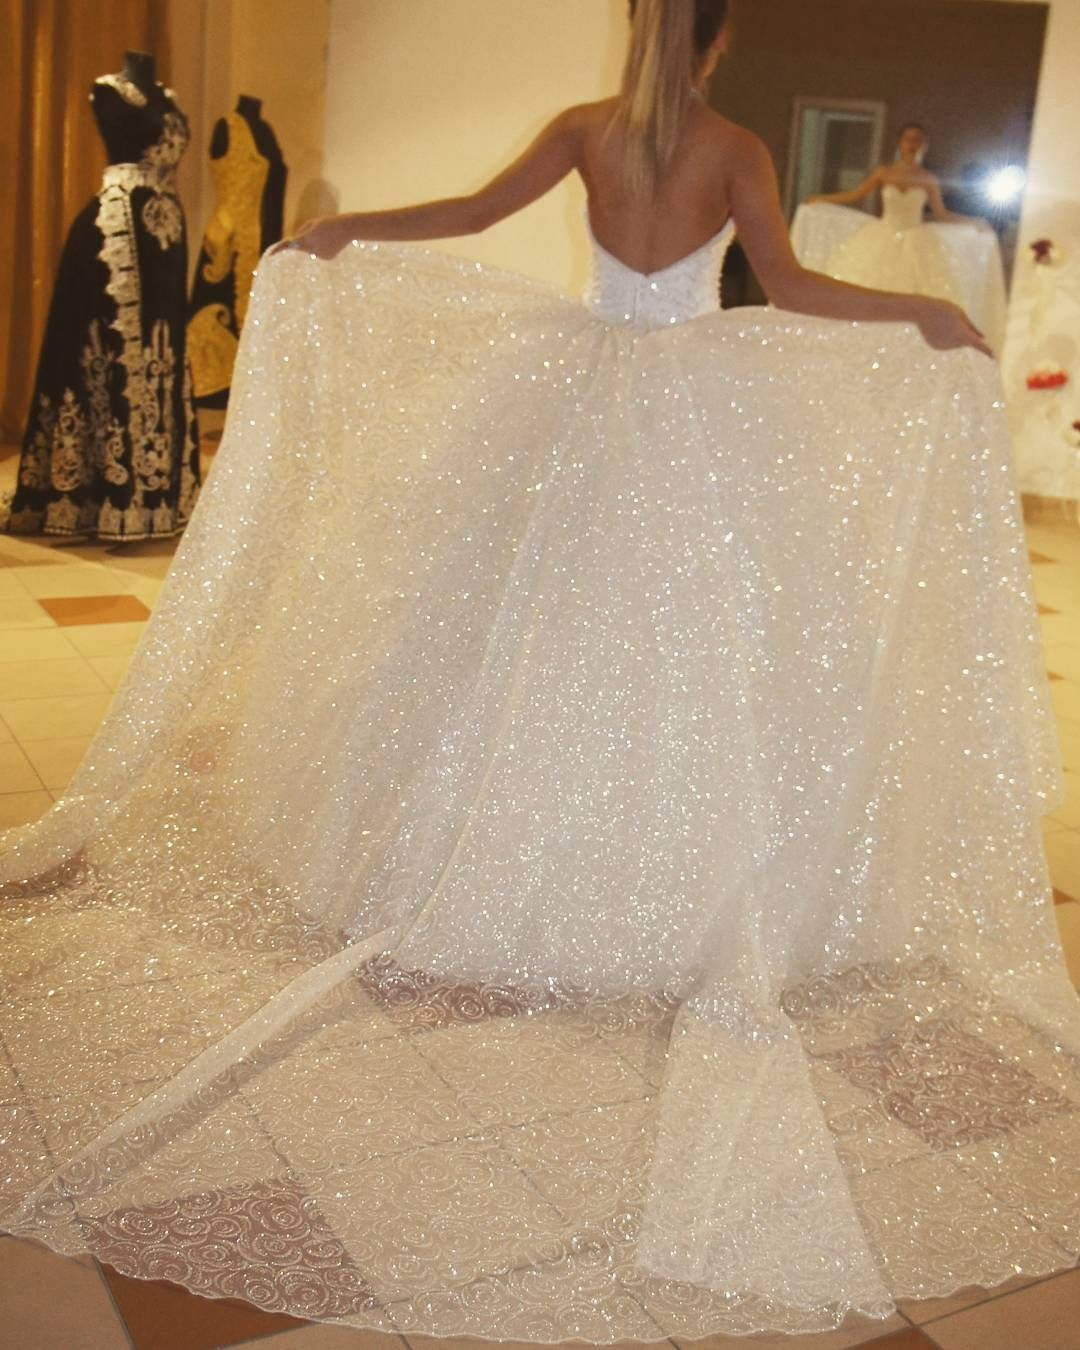 Pin By Angela Reed On Bridal Woow Sparkle Wedding Dress Sparkly Wedding Dress Glitter Wedding Dress [ 1350 x 1080 Pixel ]